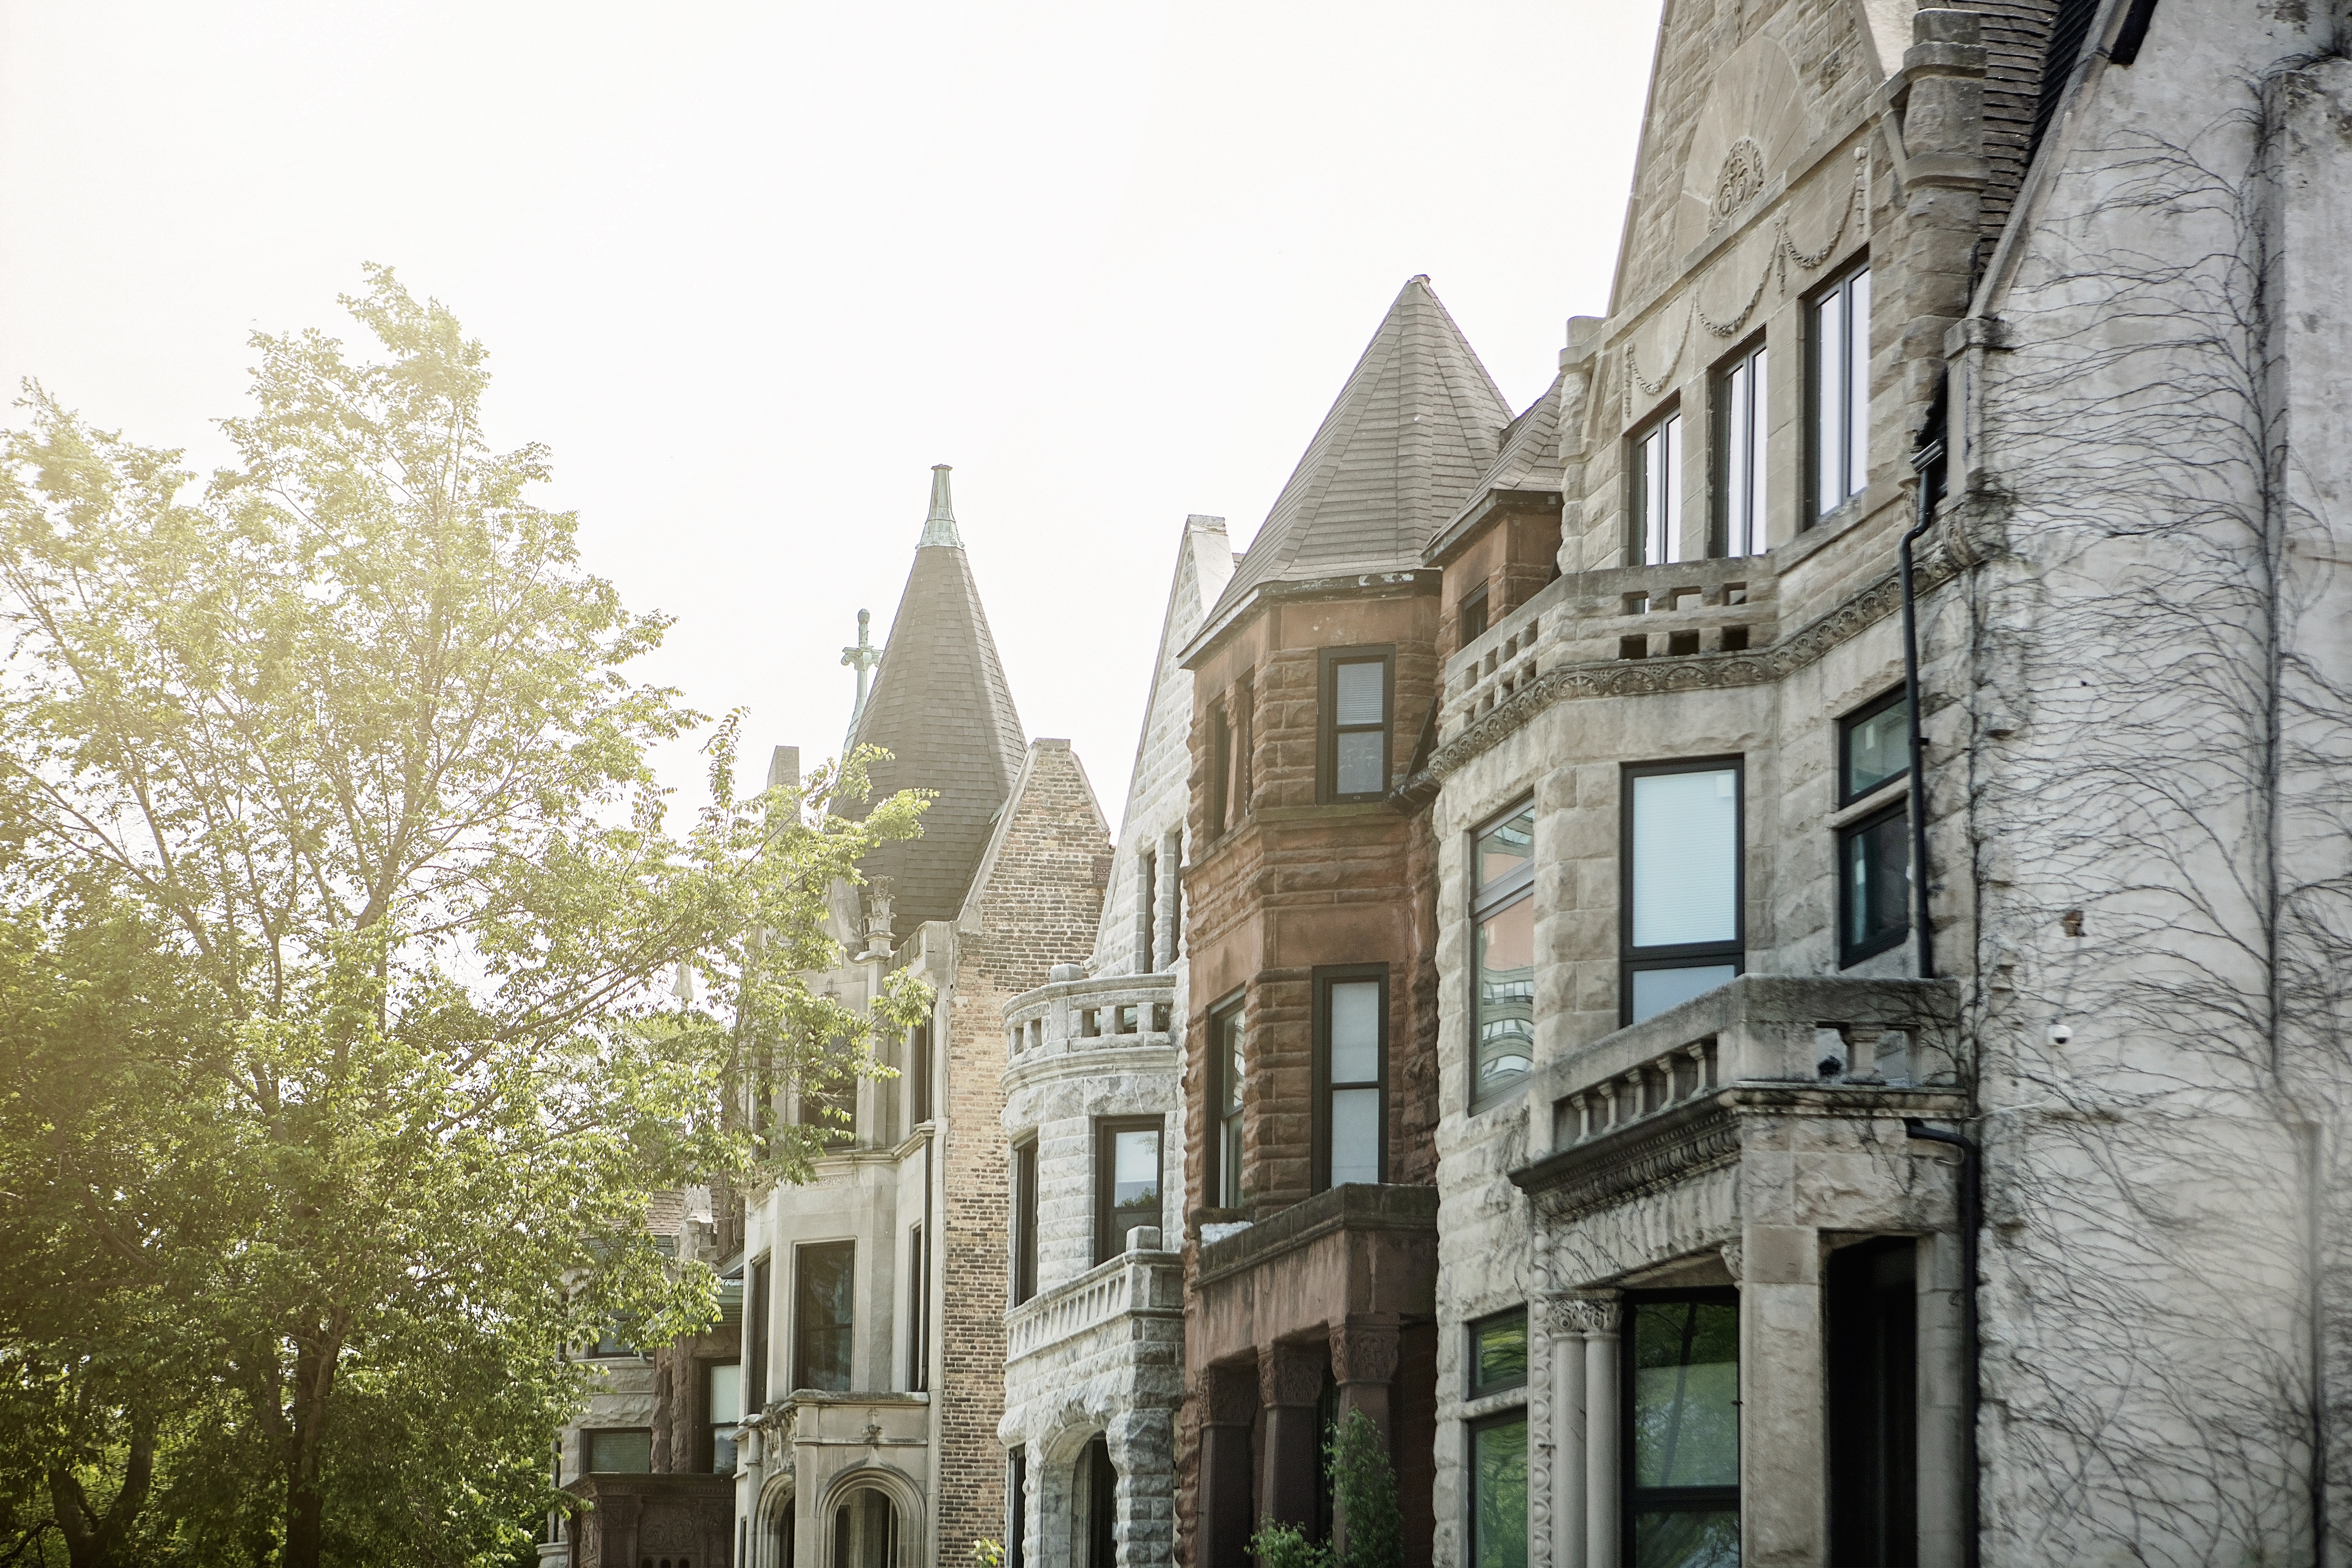 A row of Chicago homes with brick and greystone exteriors. There is a tree and clear sky.